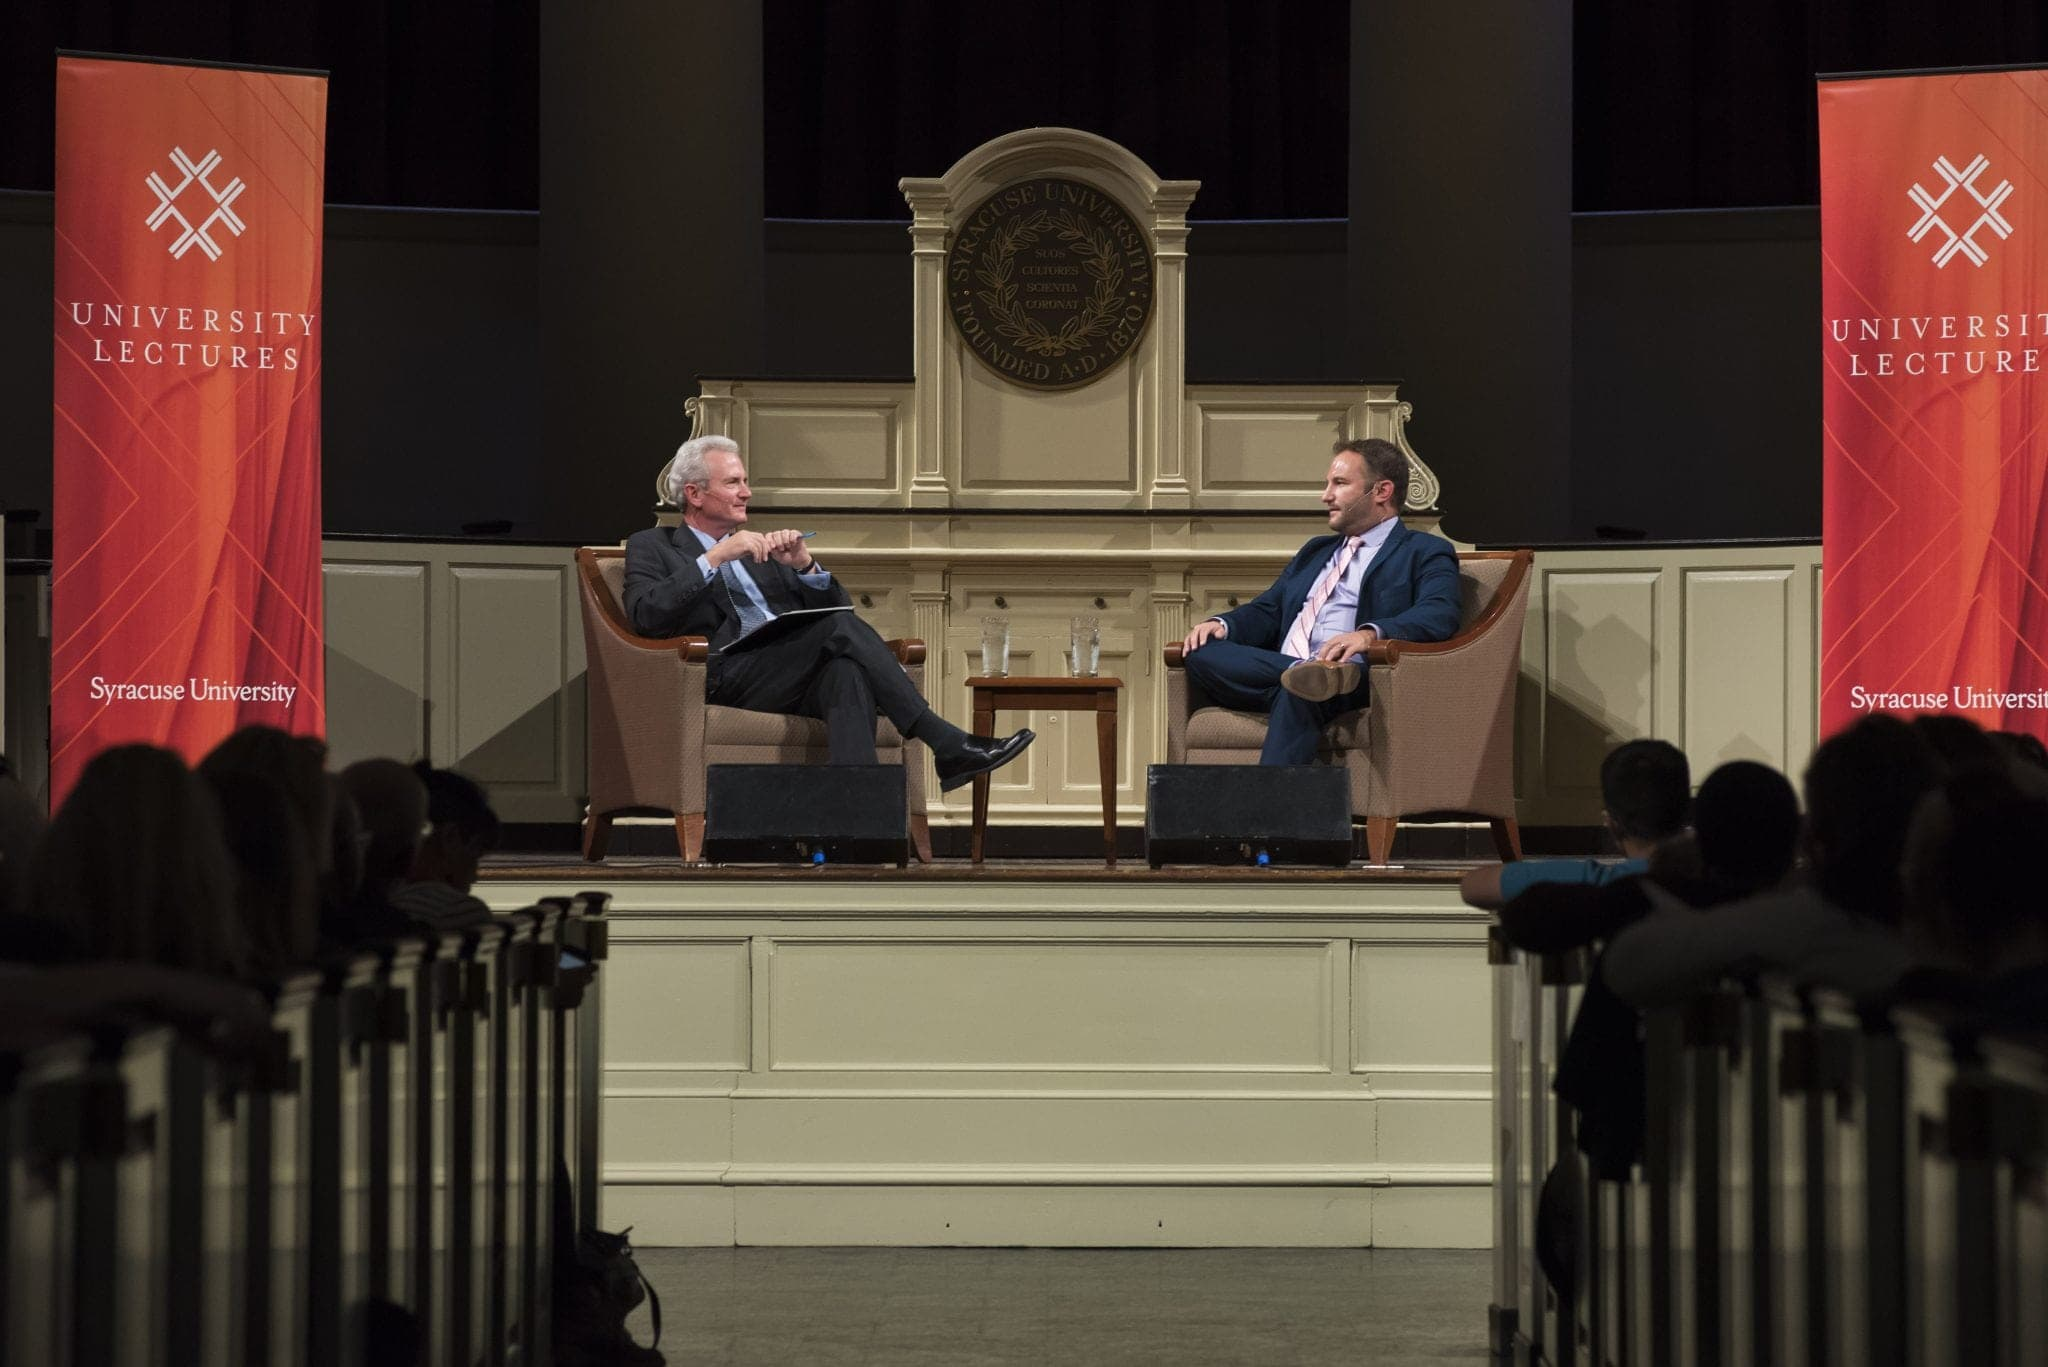 David Greene spoke at Hendrick's Chapel at Syracuse University on Tuesday night.